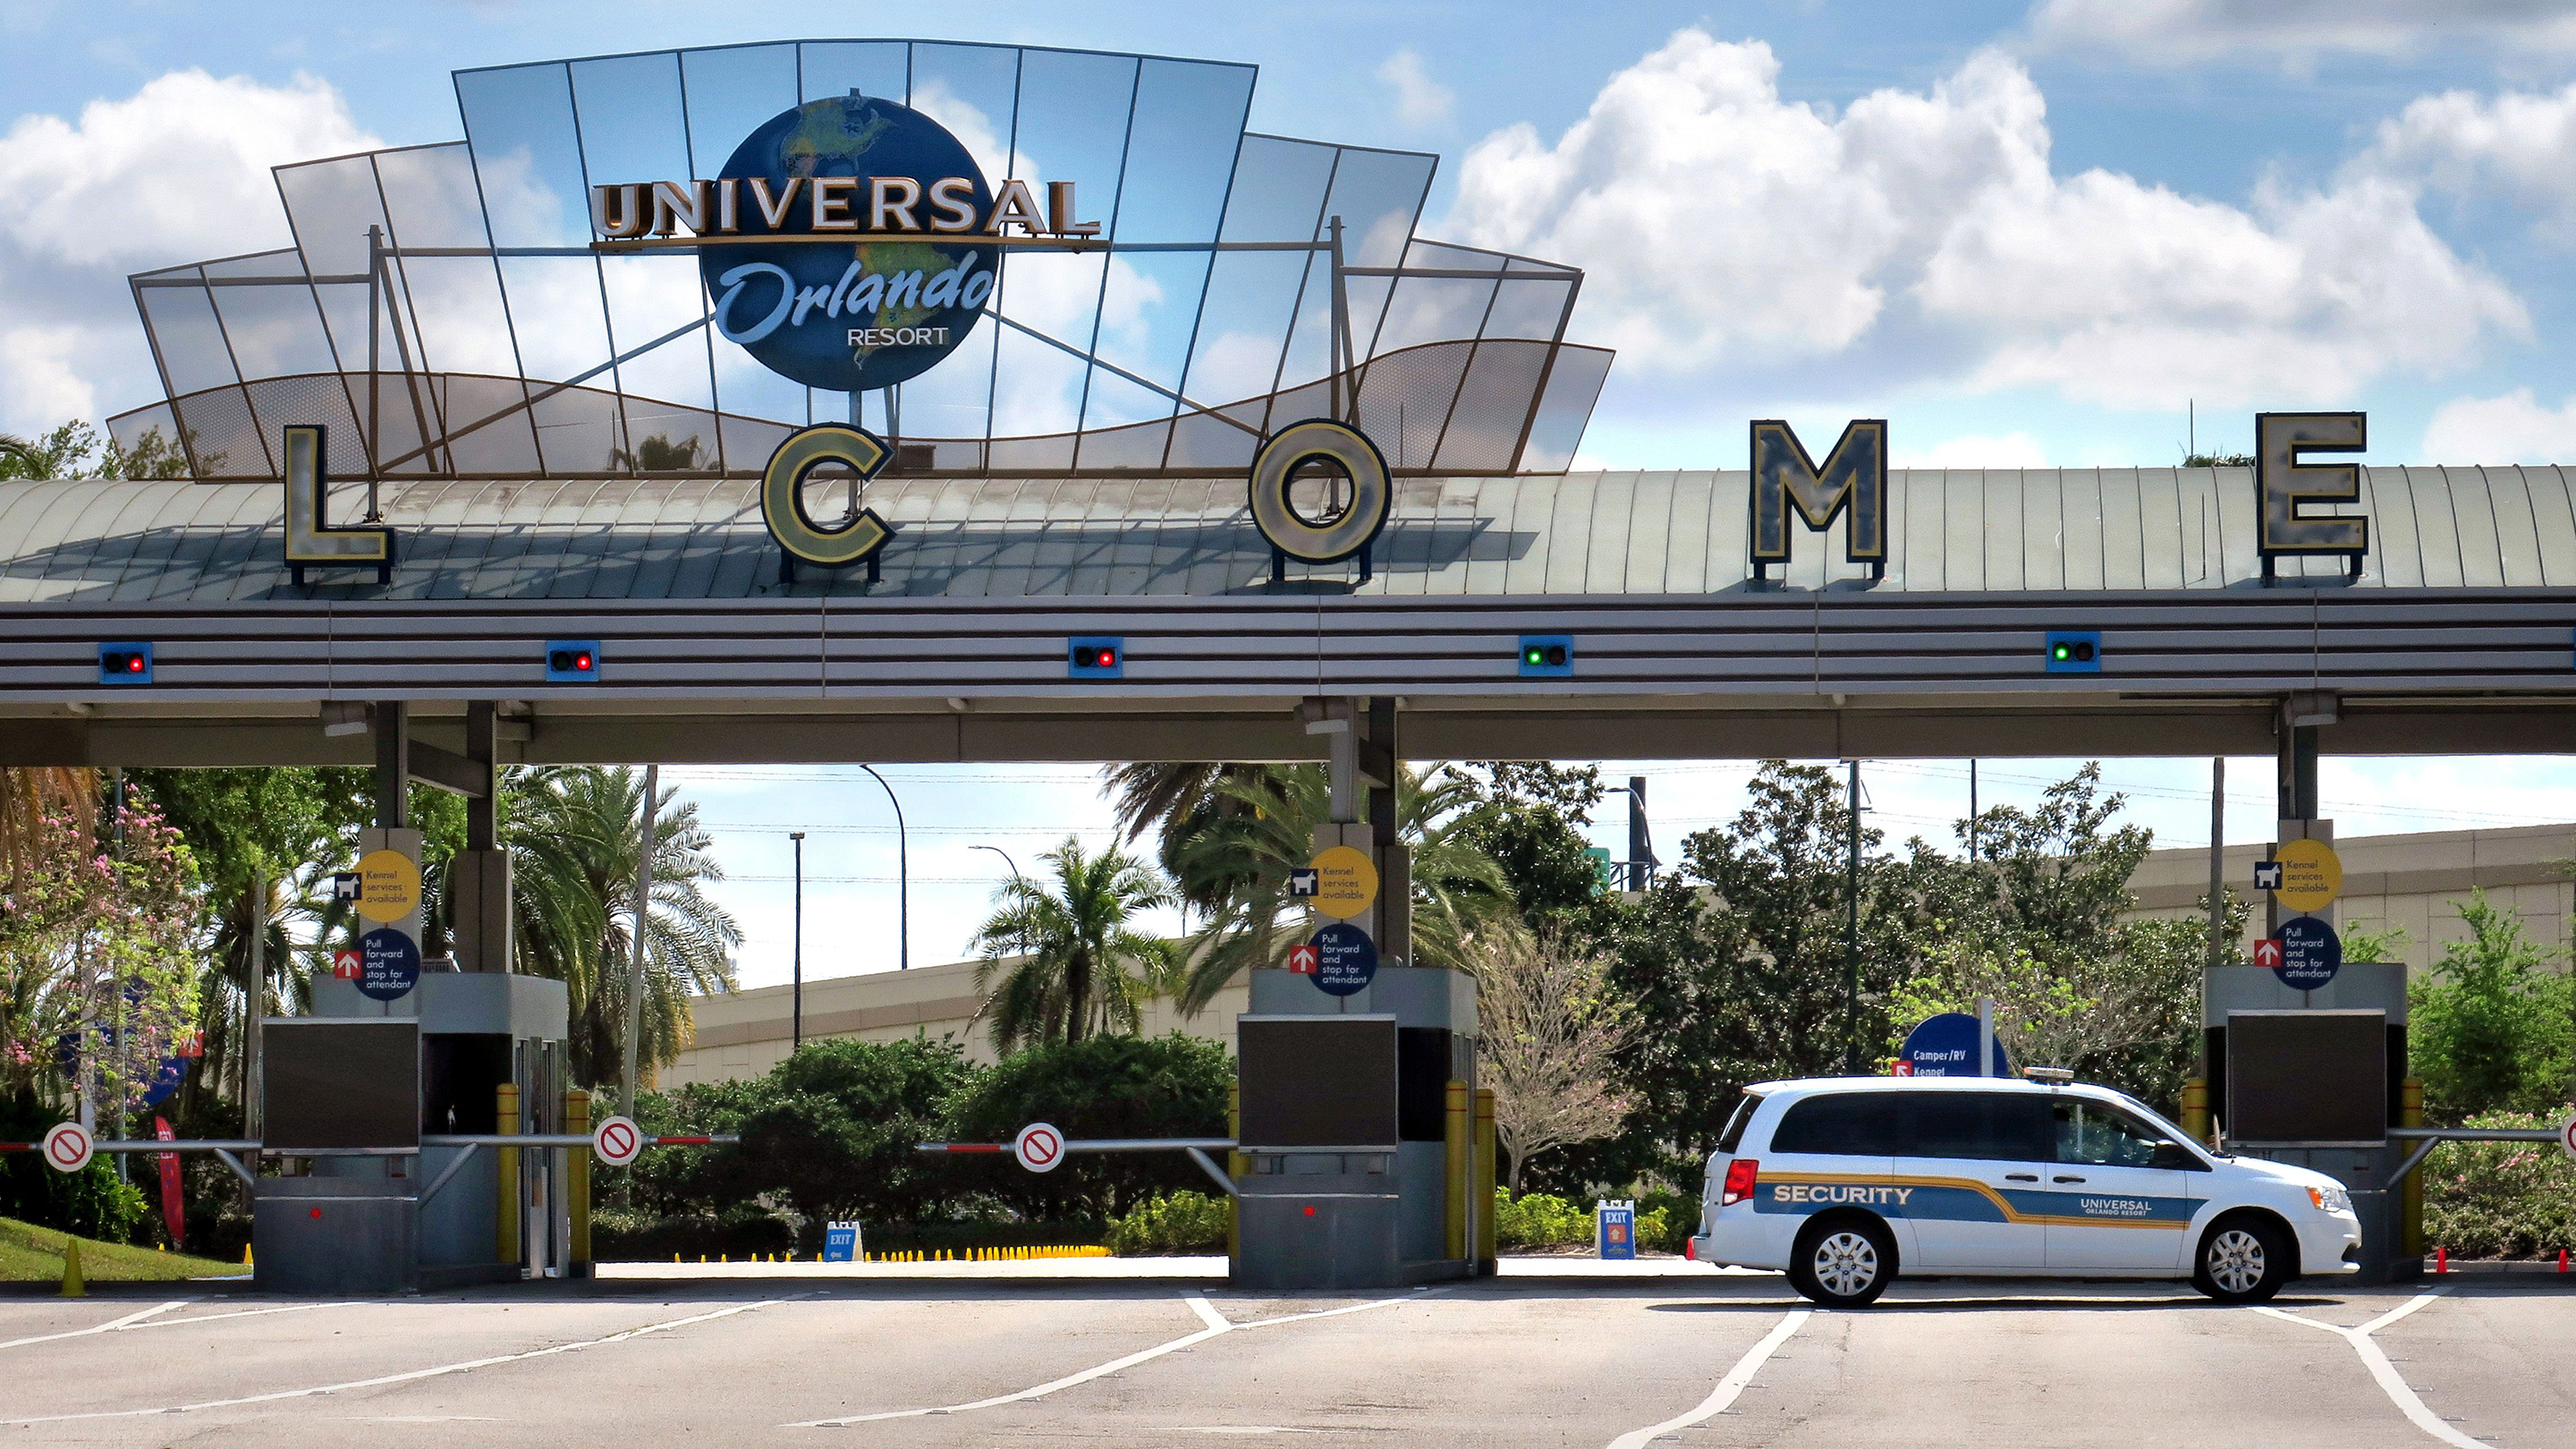 Universal Orlando will reopen some resort hotels on June 2